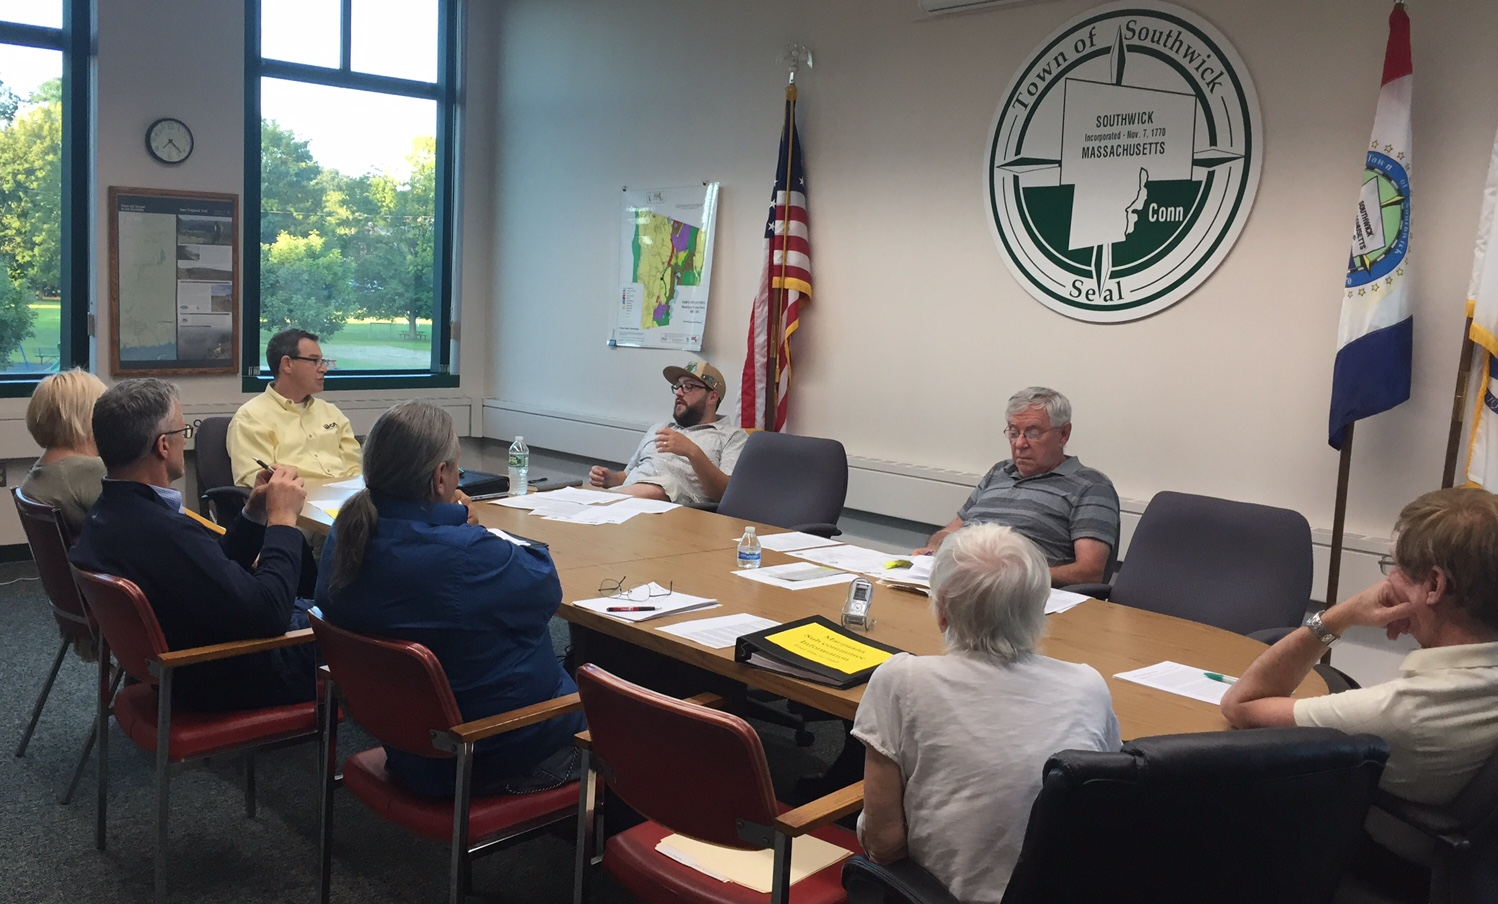 Marijuana subcommittee discusses drafted town bylaw